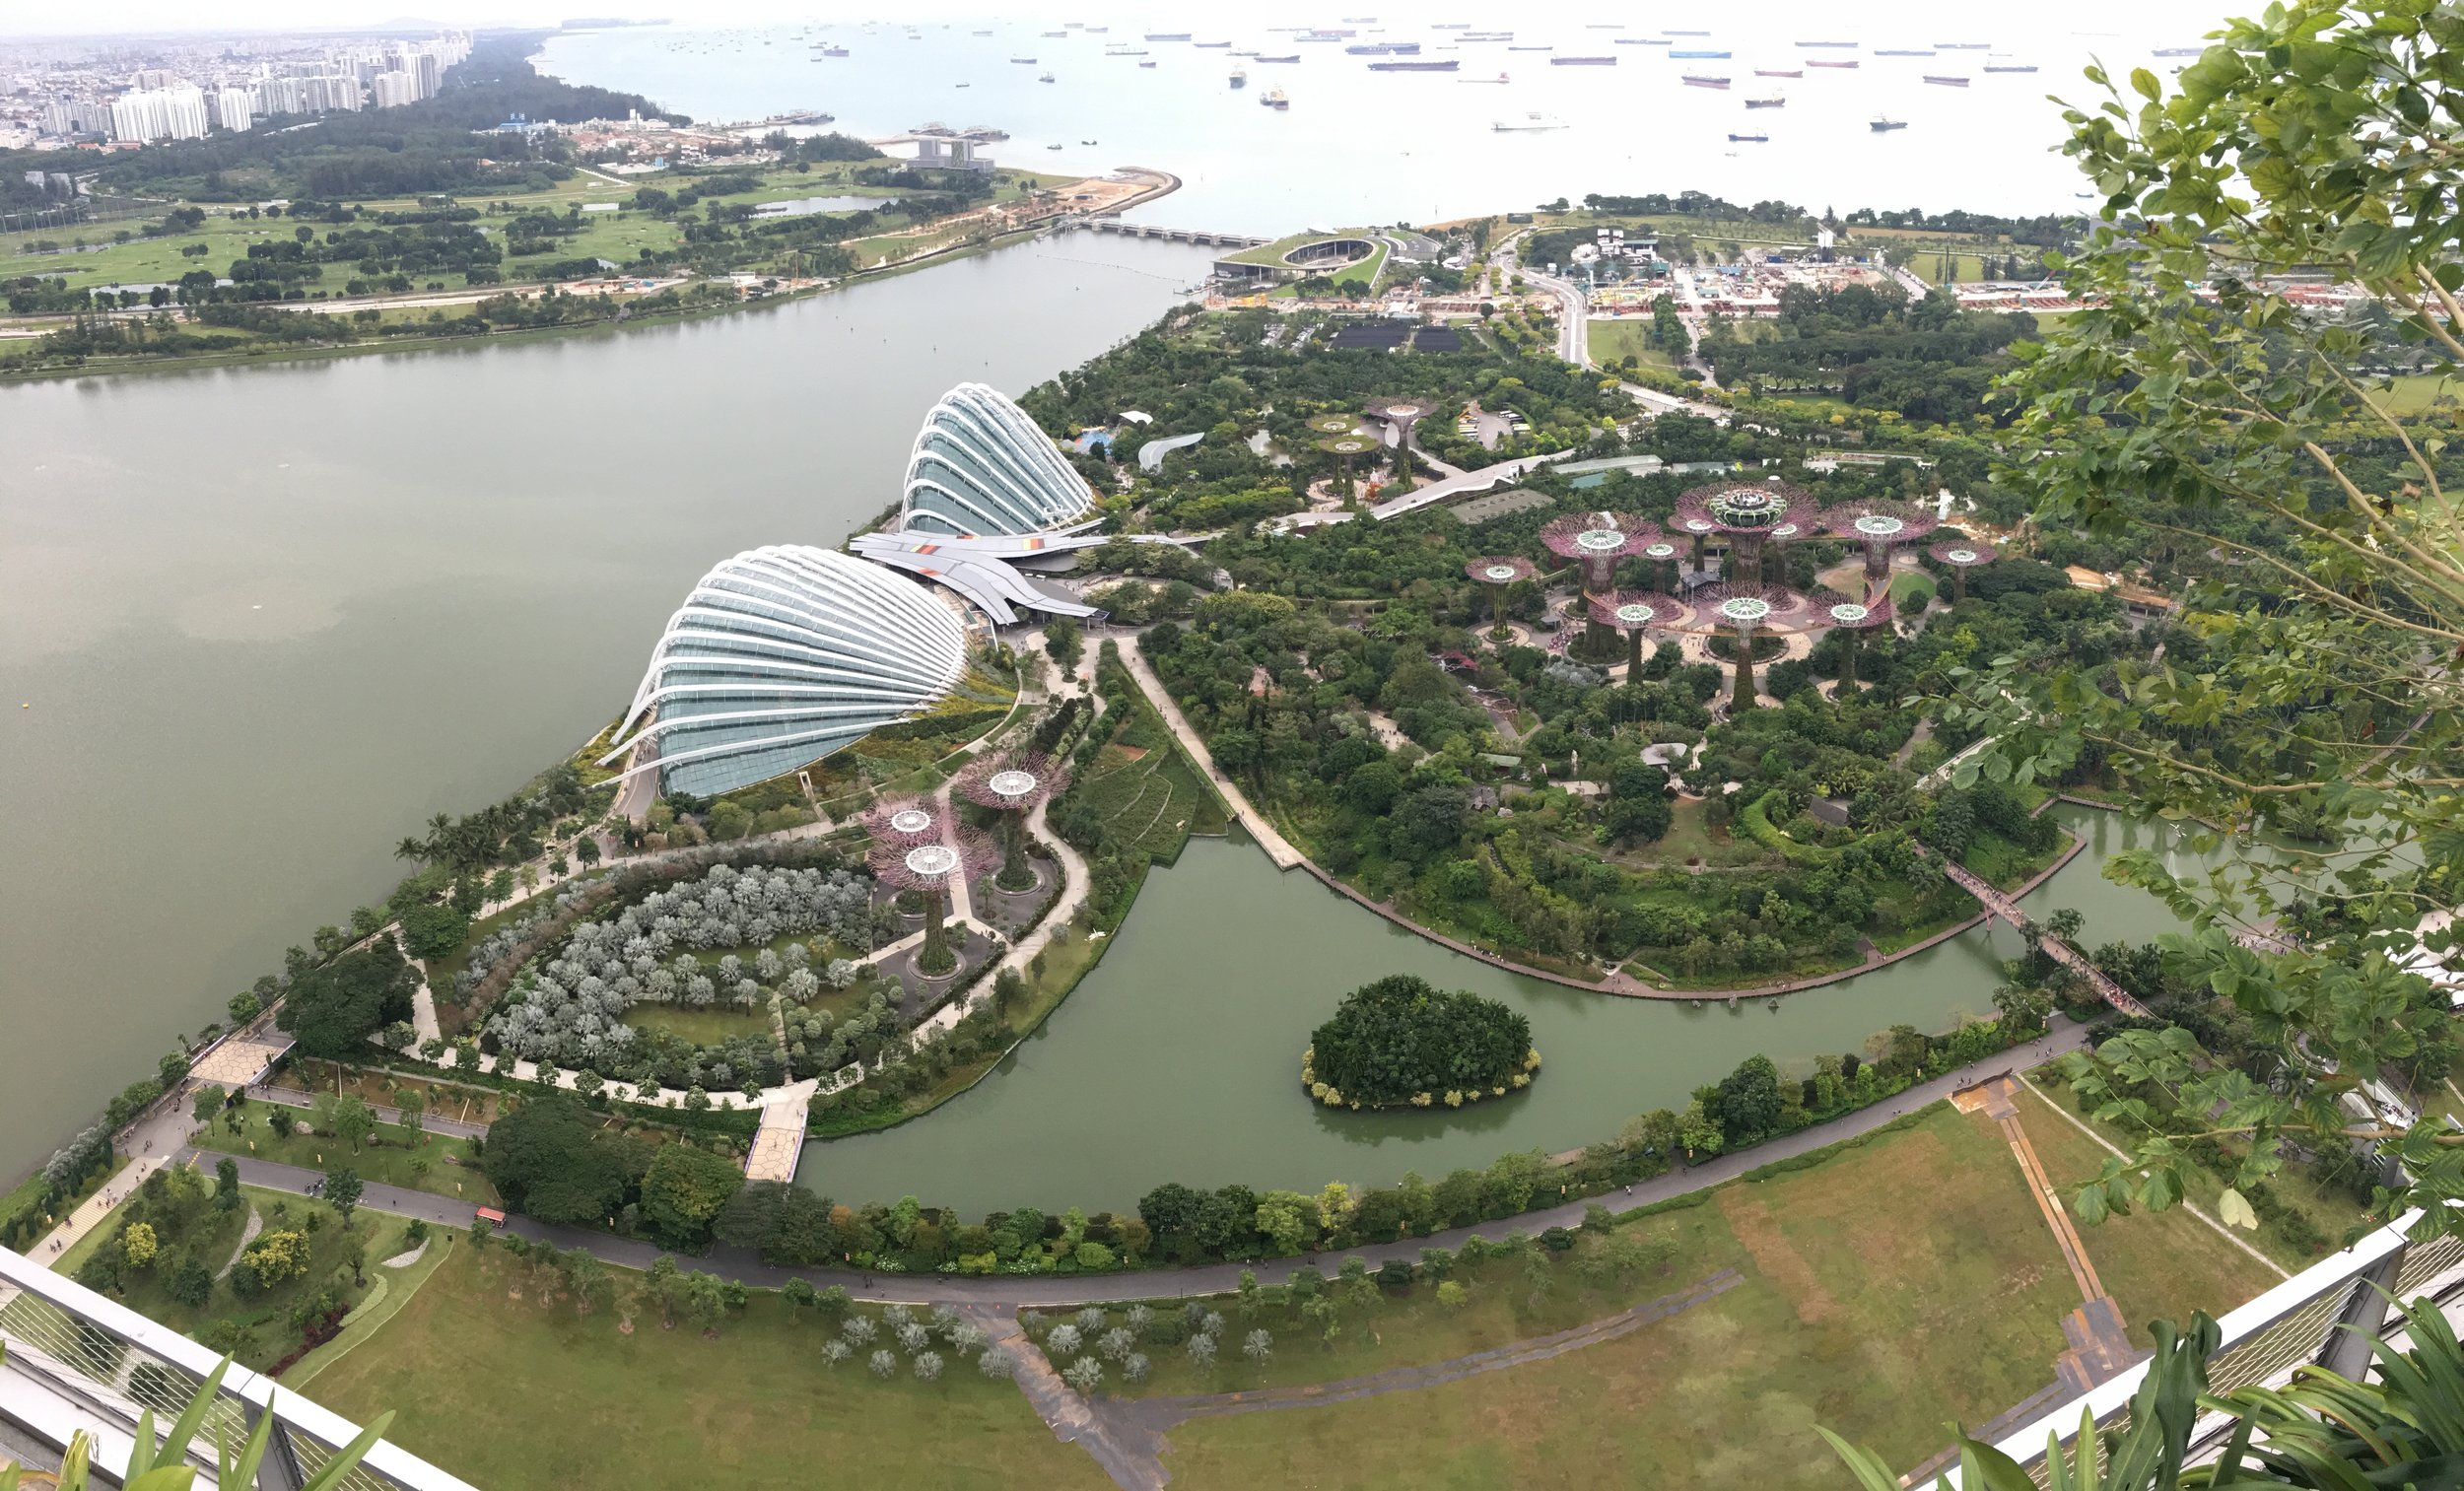 View of the Garden by the Bay from the Marina Bay Sands